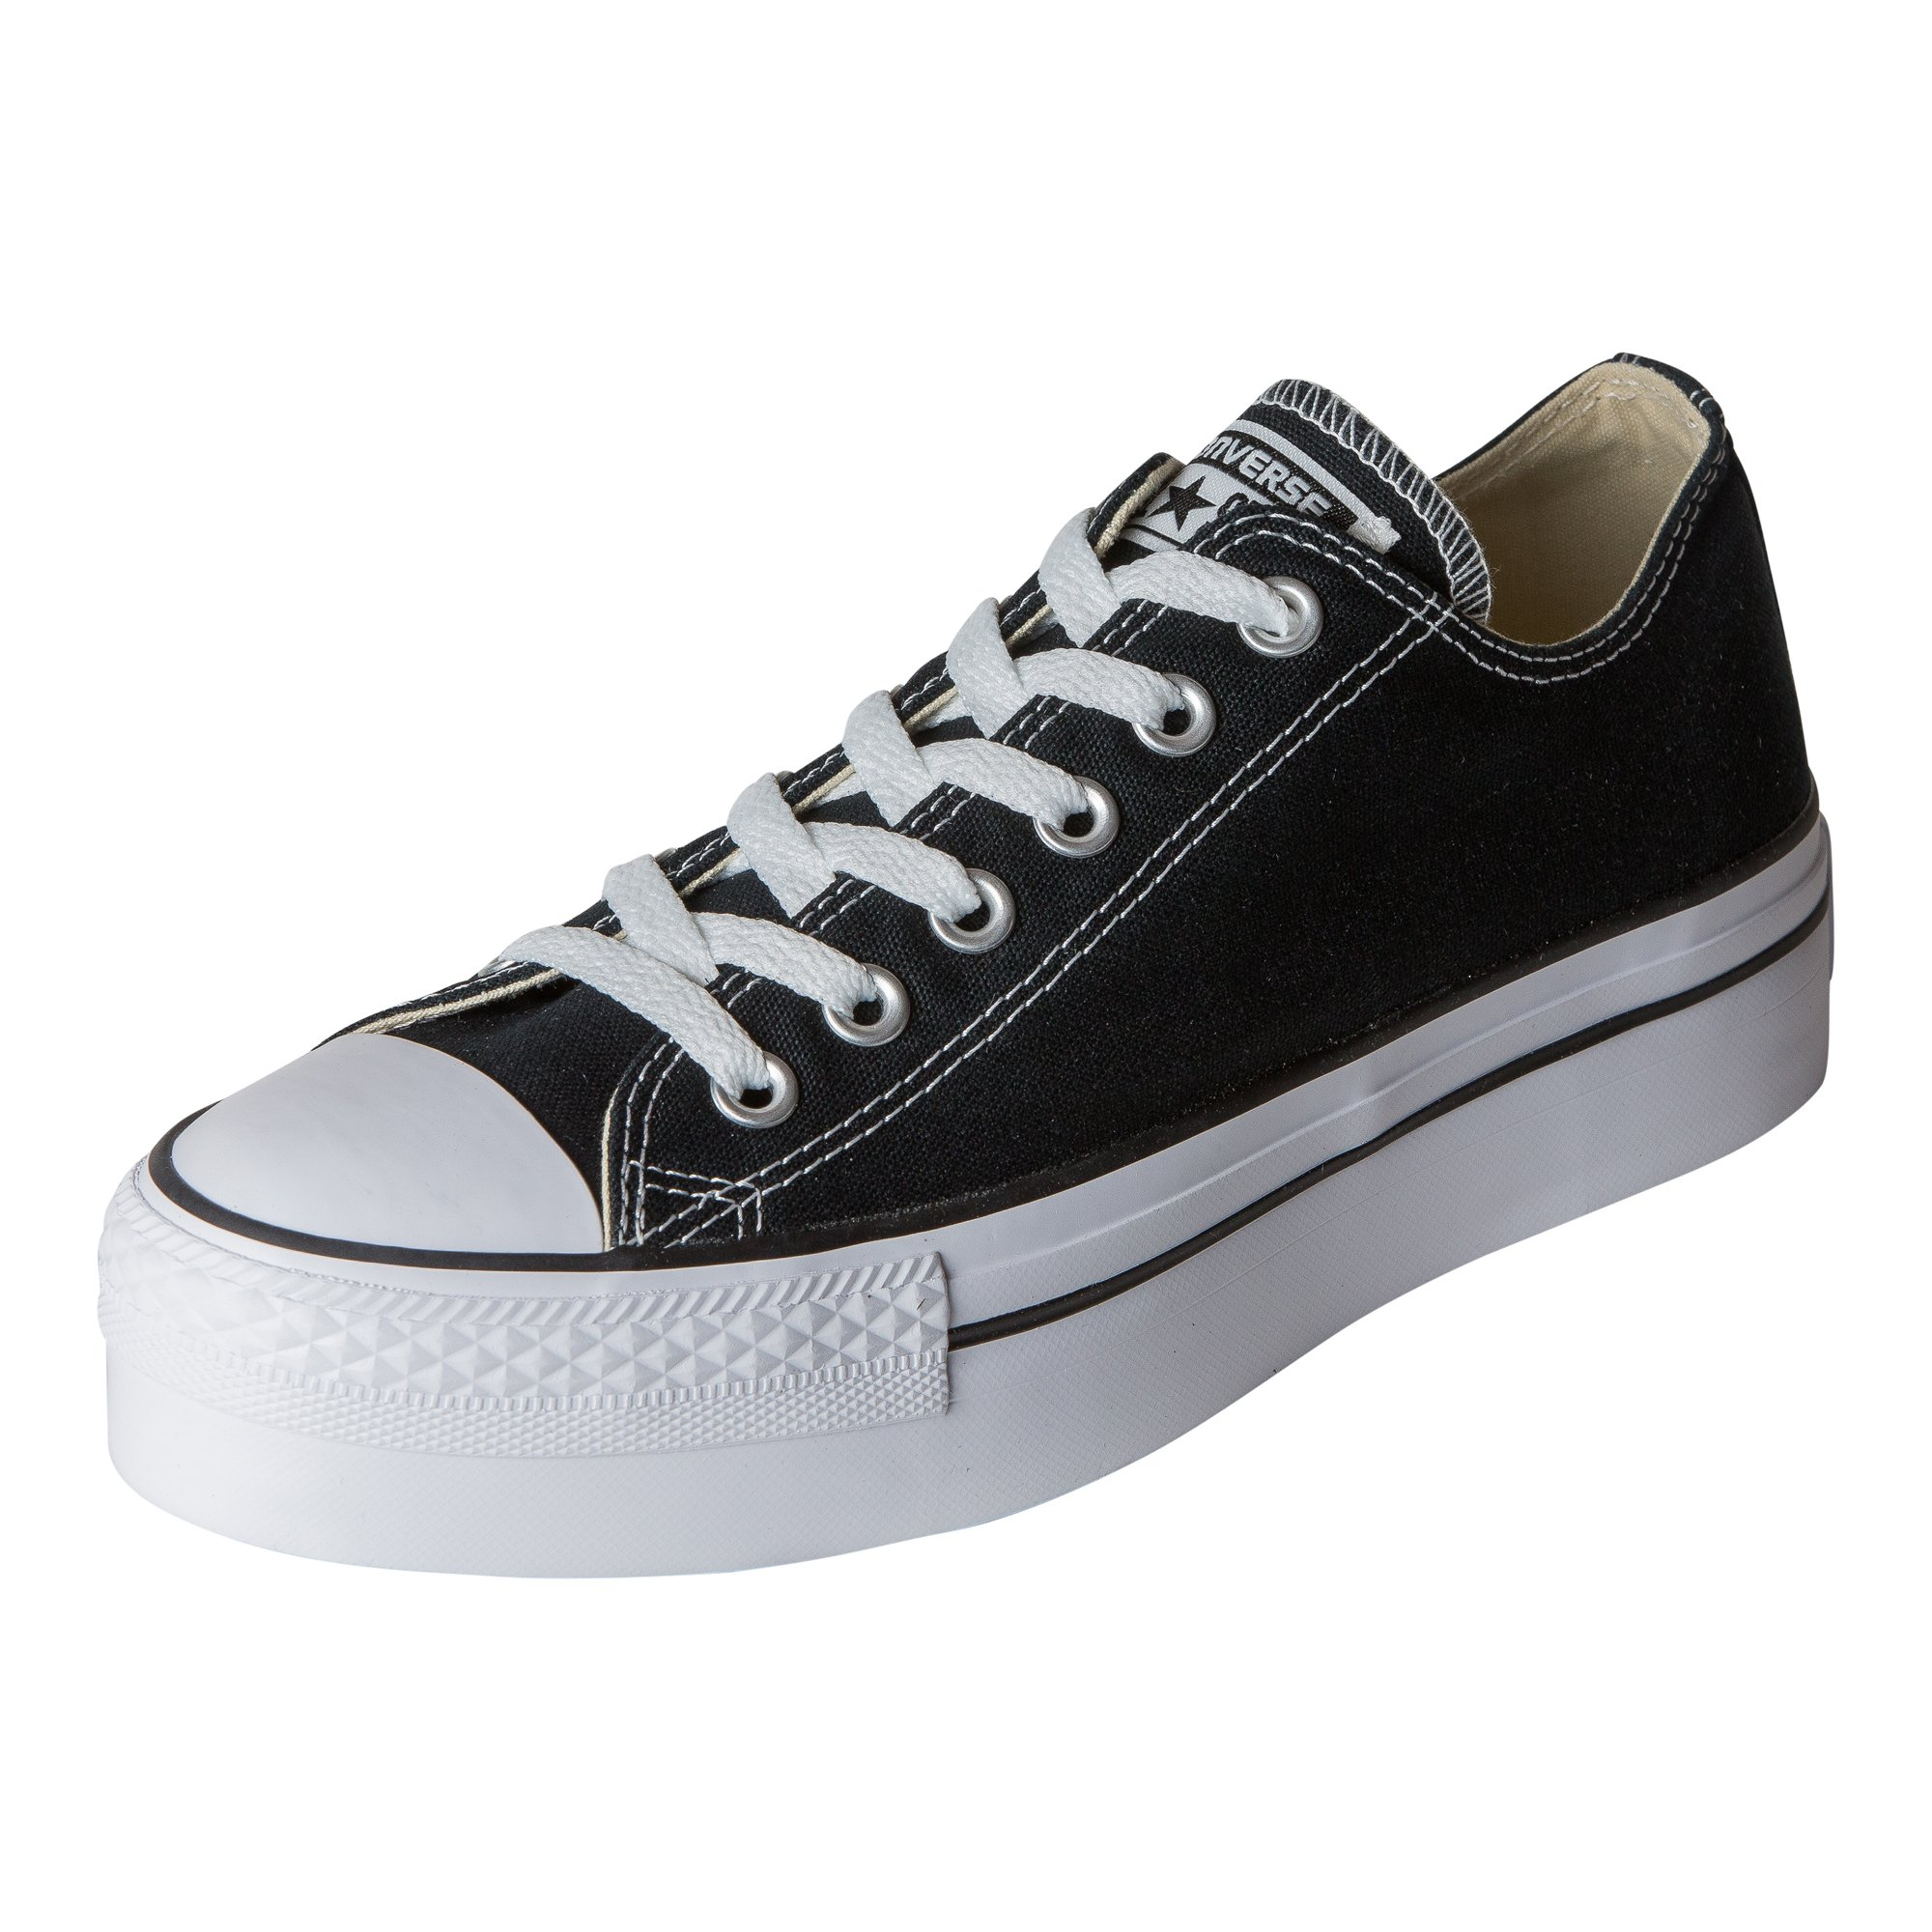 Converse Women's Chuck Taylor All Star Lo Platform,Black/White,US 5.5 M